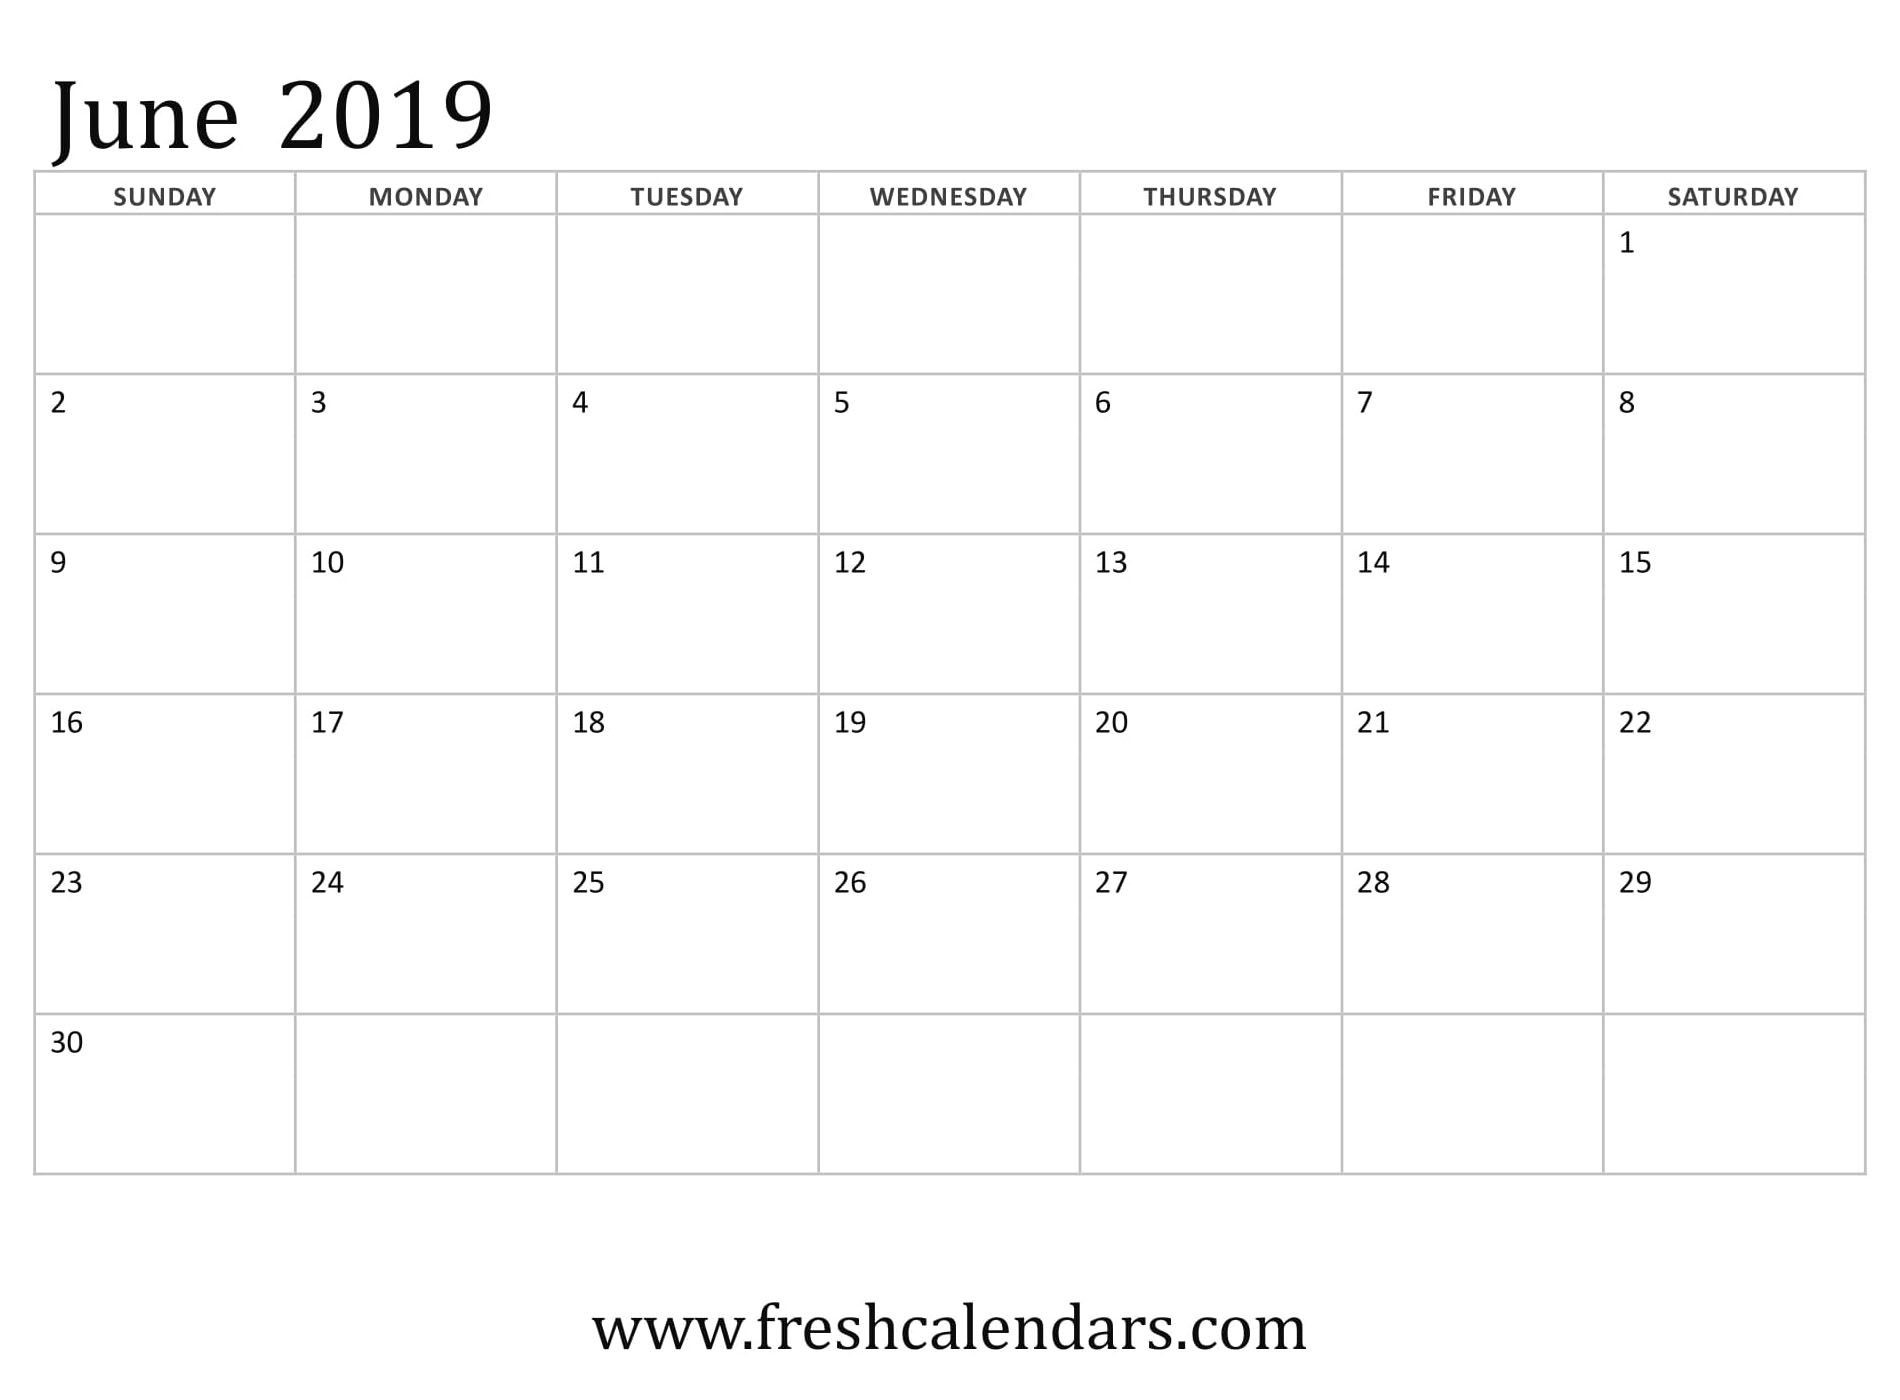 June 2019 Calendar Basic Template | Printable Monthly-Monthly Schdule For June